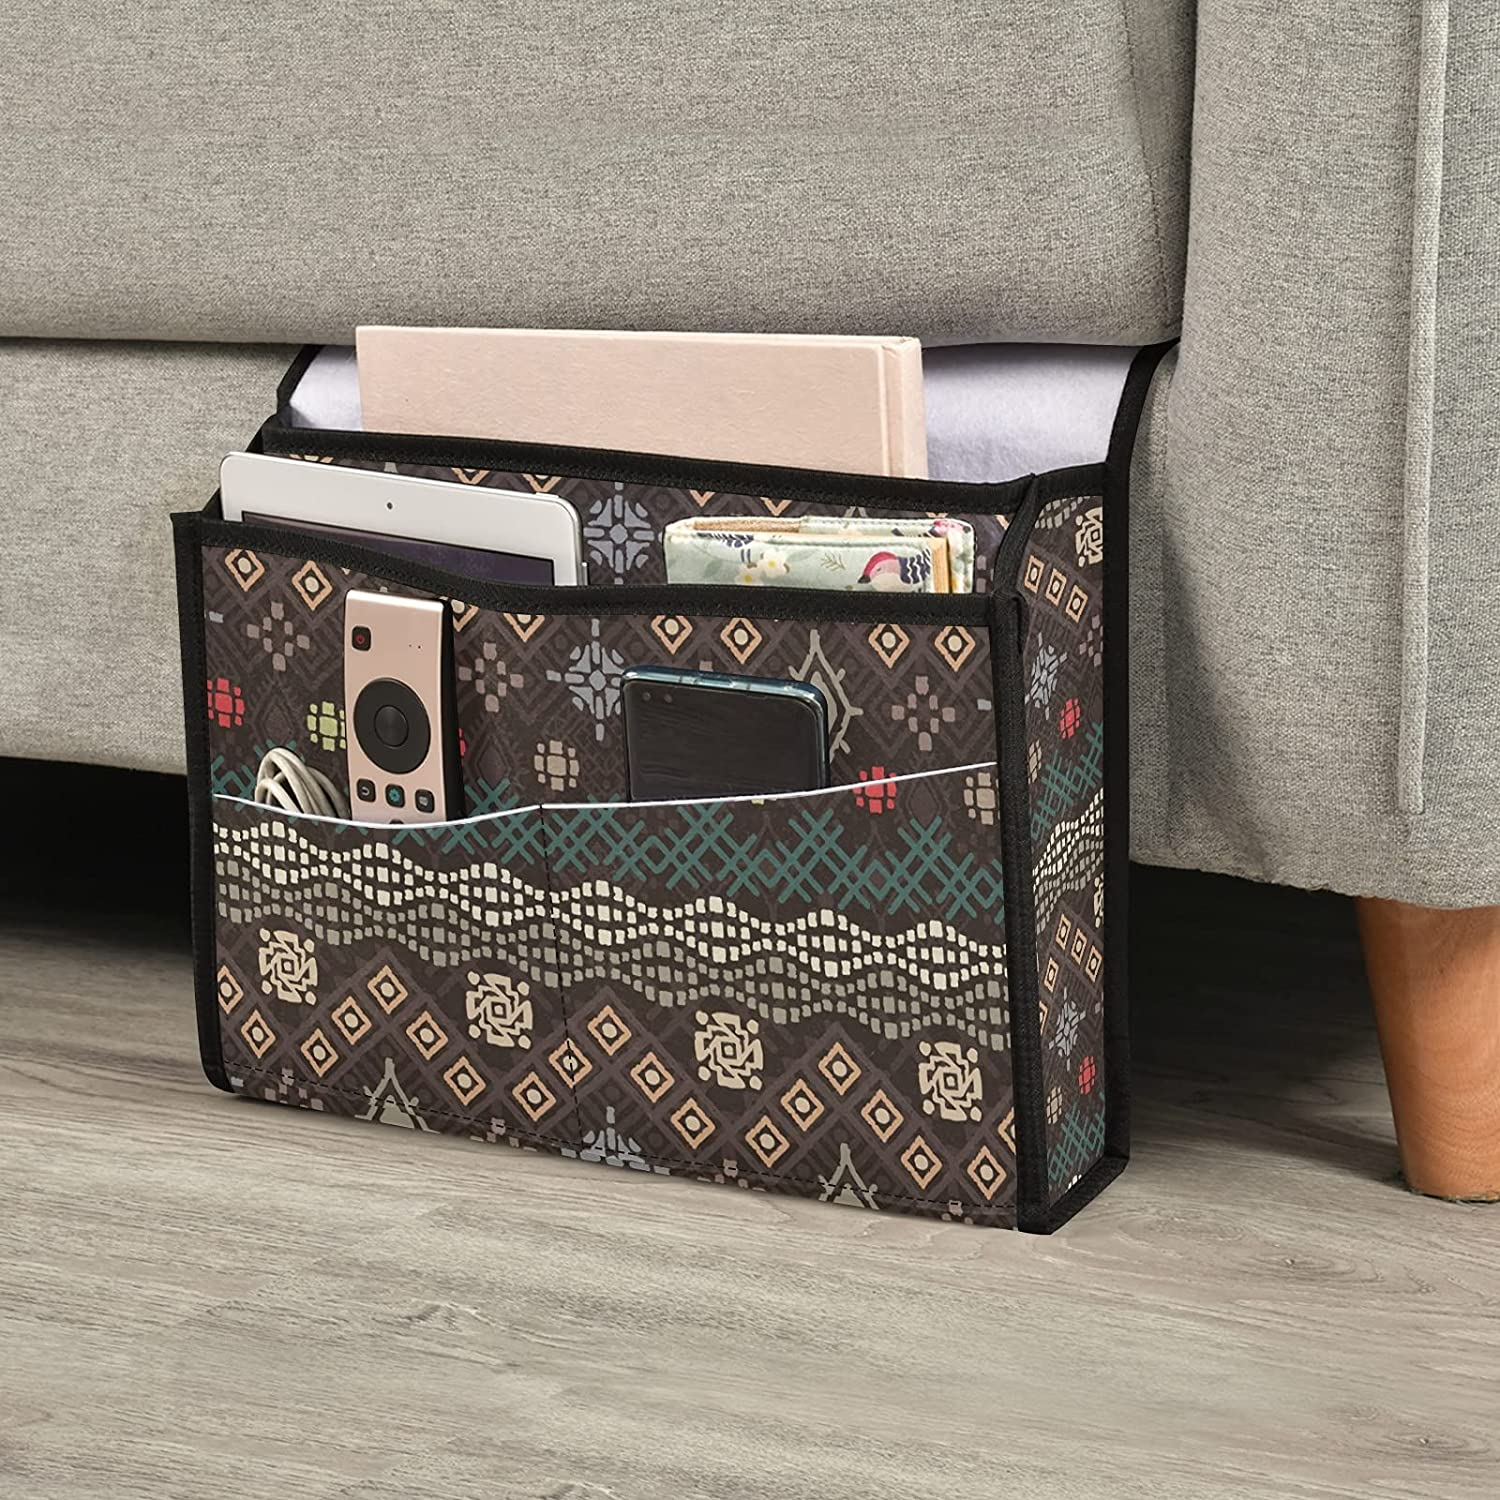 JUNZAN Bedside Storage Easy-to-use Organizer Bedr OFFicial store Sofa Desk Bohemian